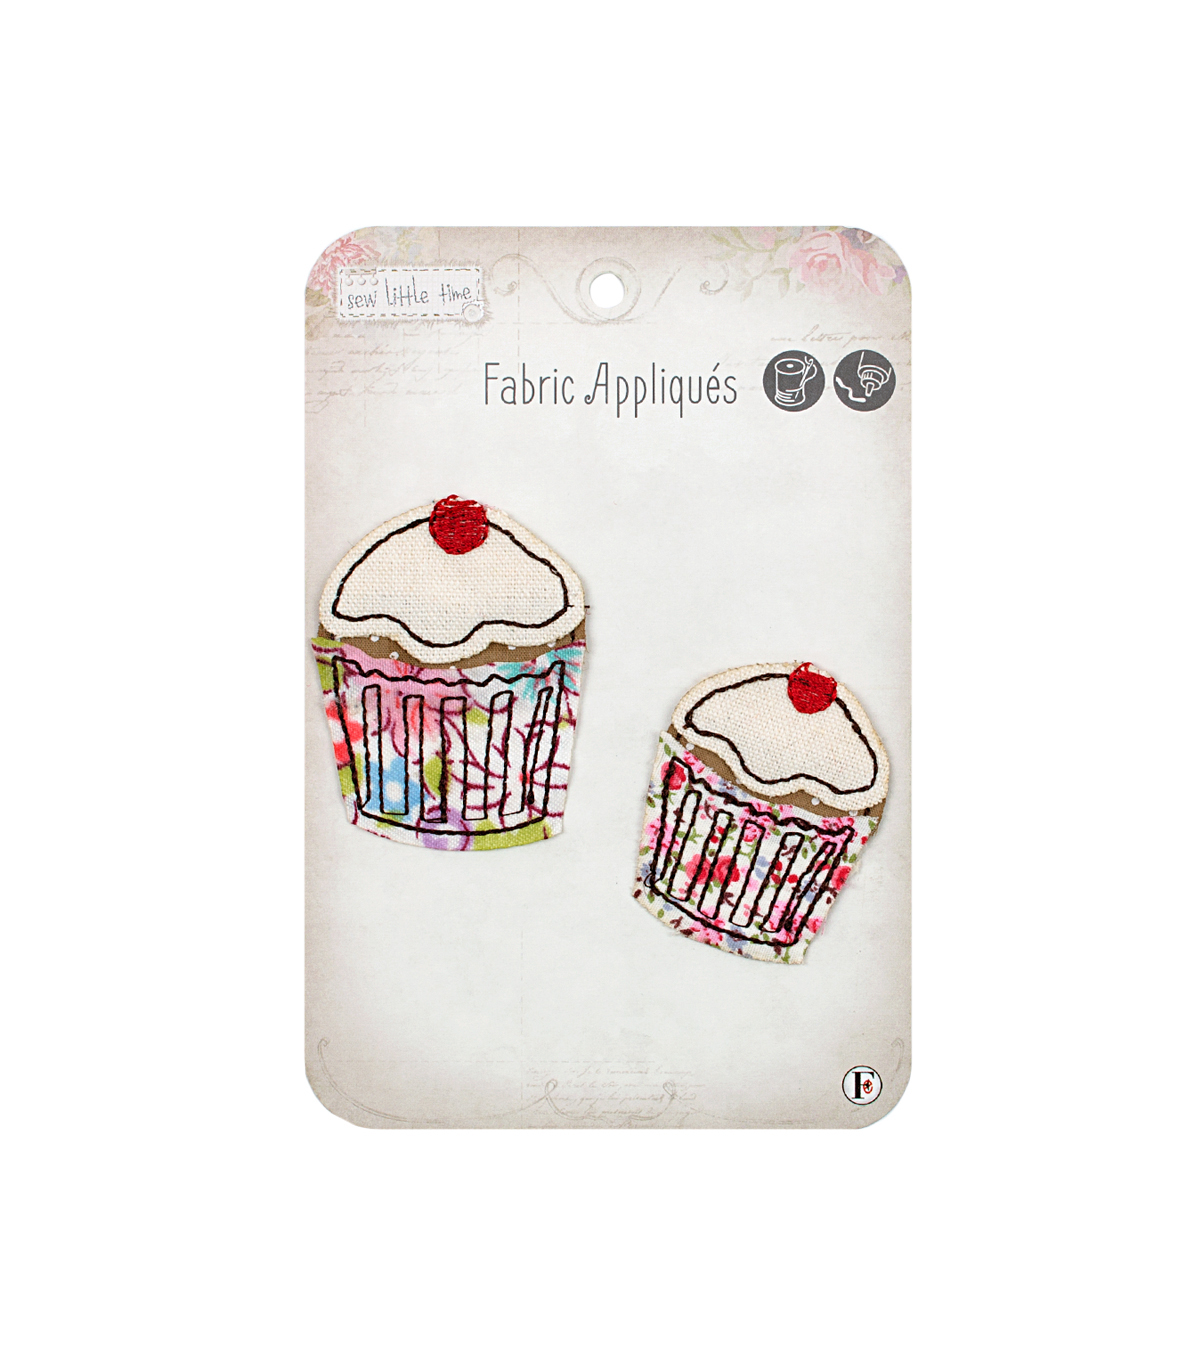 Fabric Editions Sew Little Time 2 Pack Fabric Appliques-Cupcake